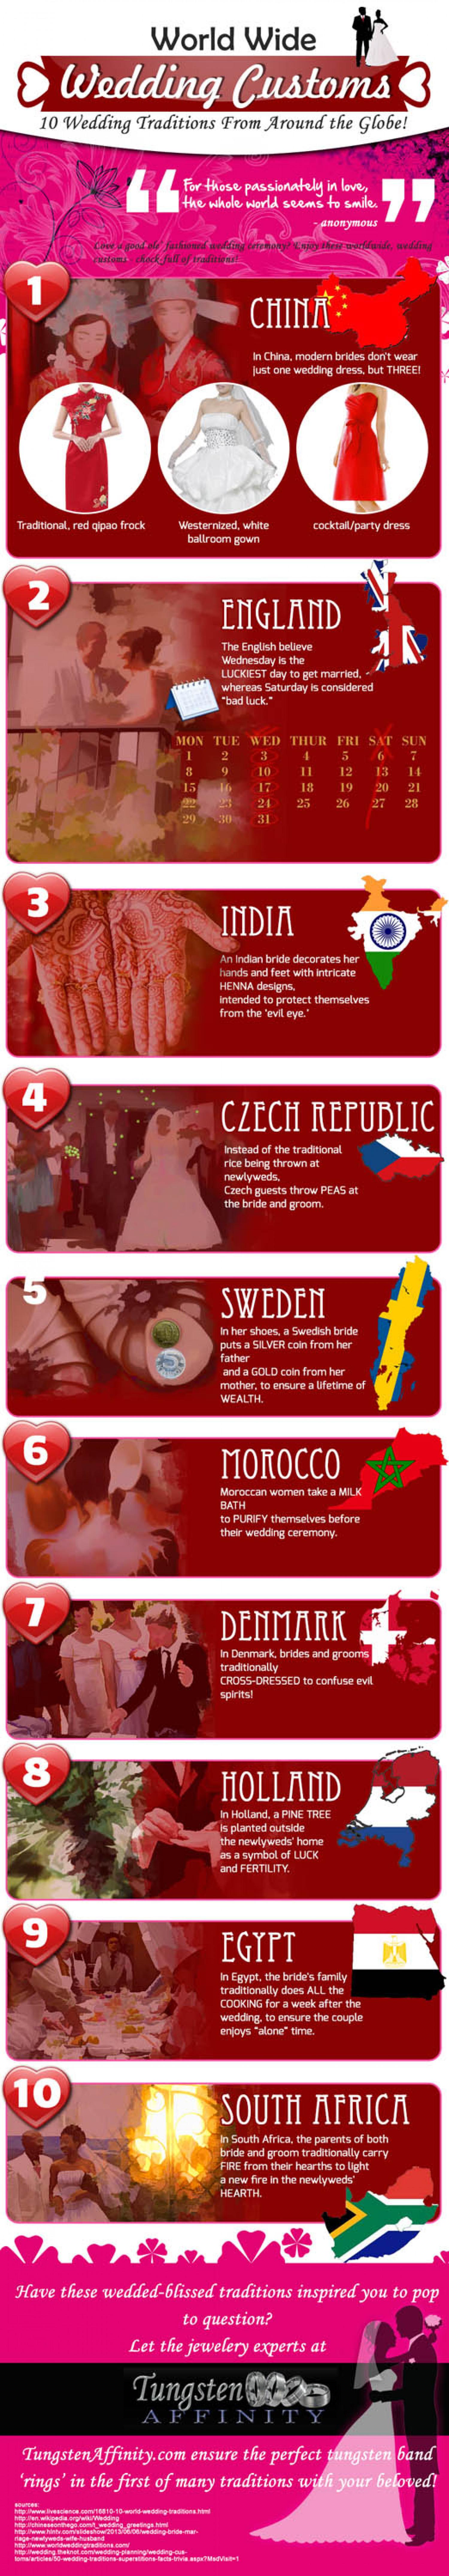 Worldwide wedding customs  Infographic